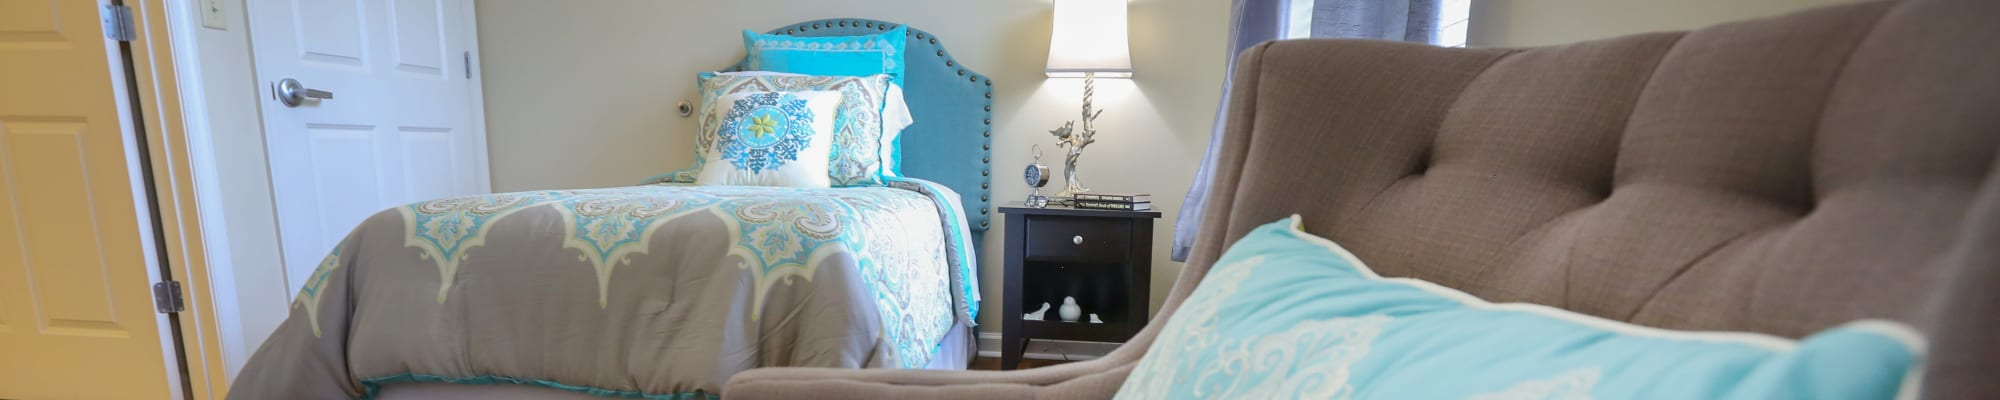 Living options at Harmony at Mt. Juliet in Mt. Juliet, Tennessee